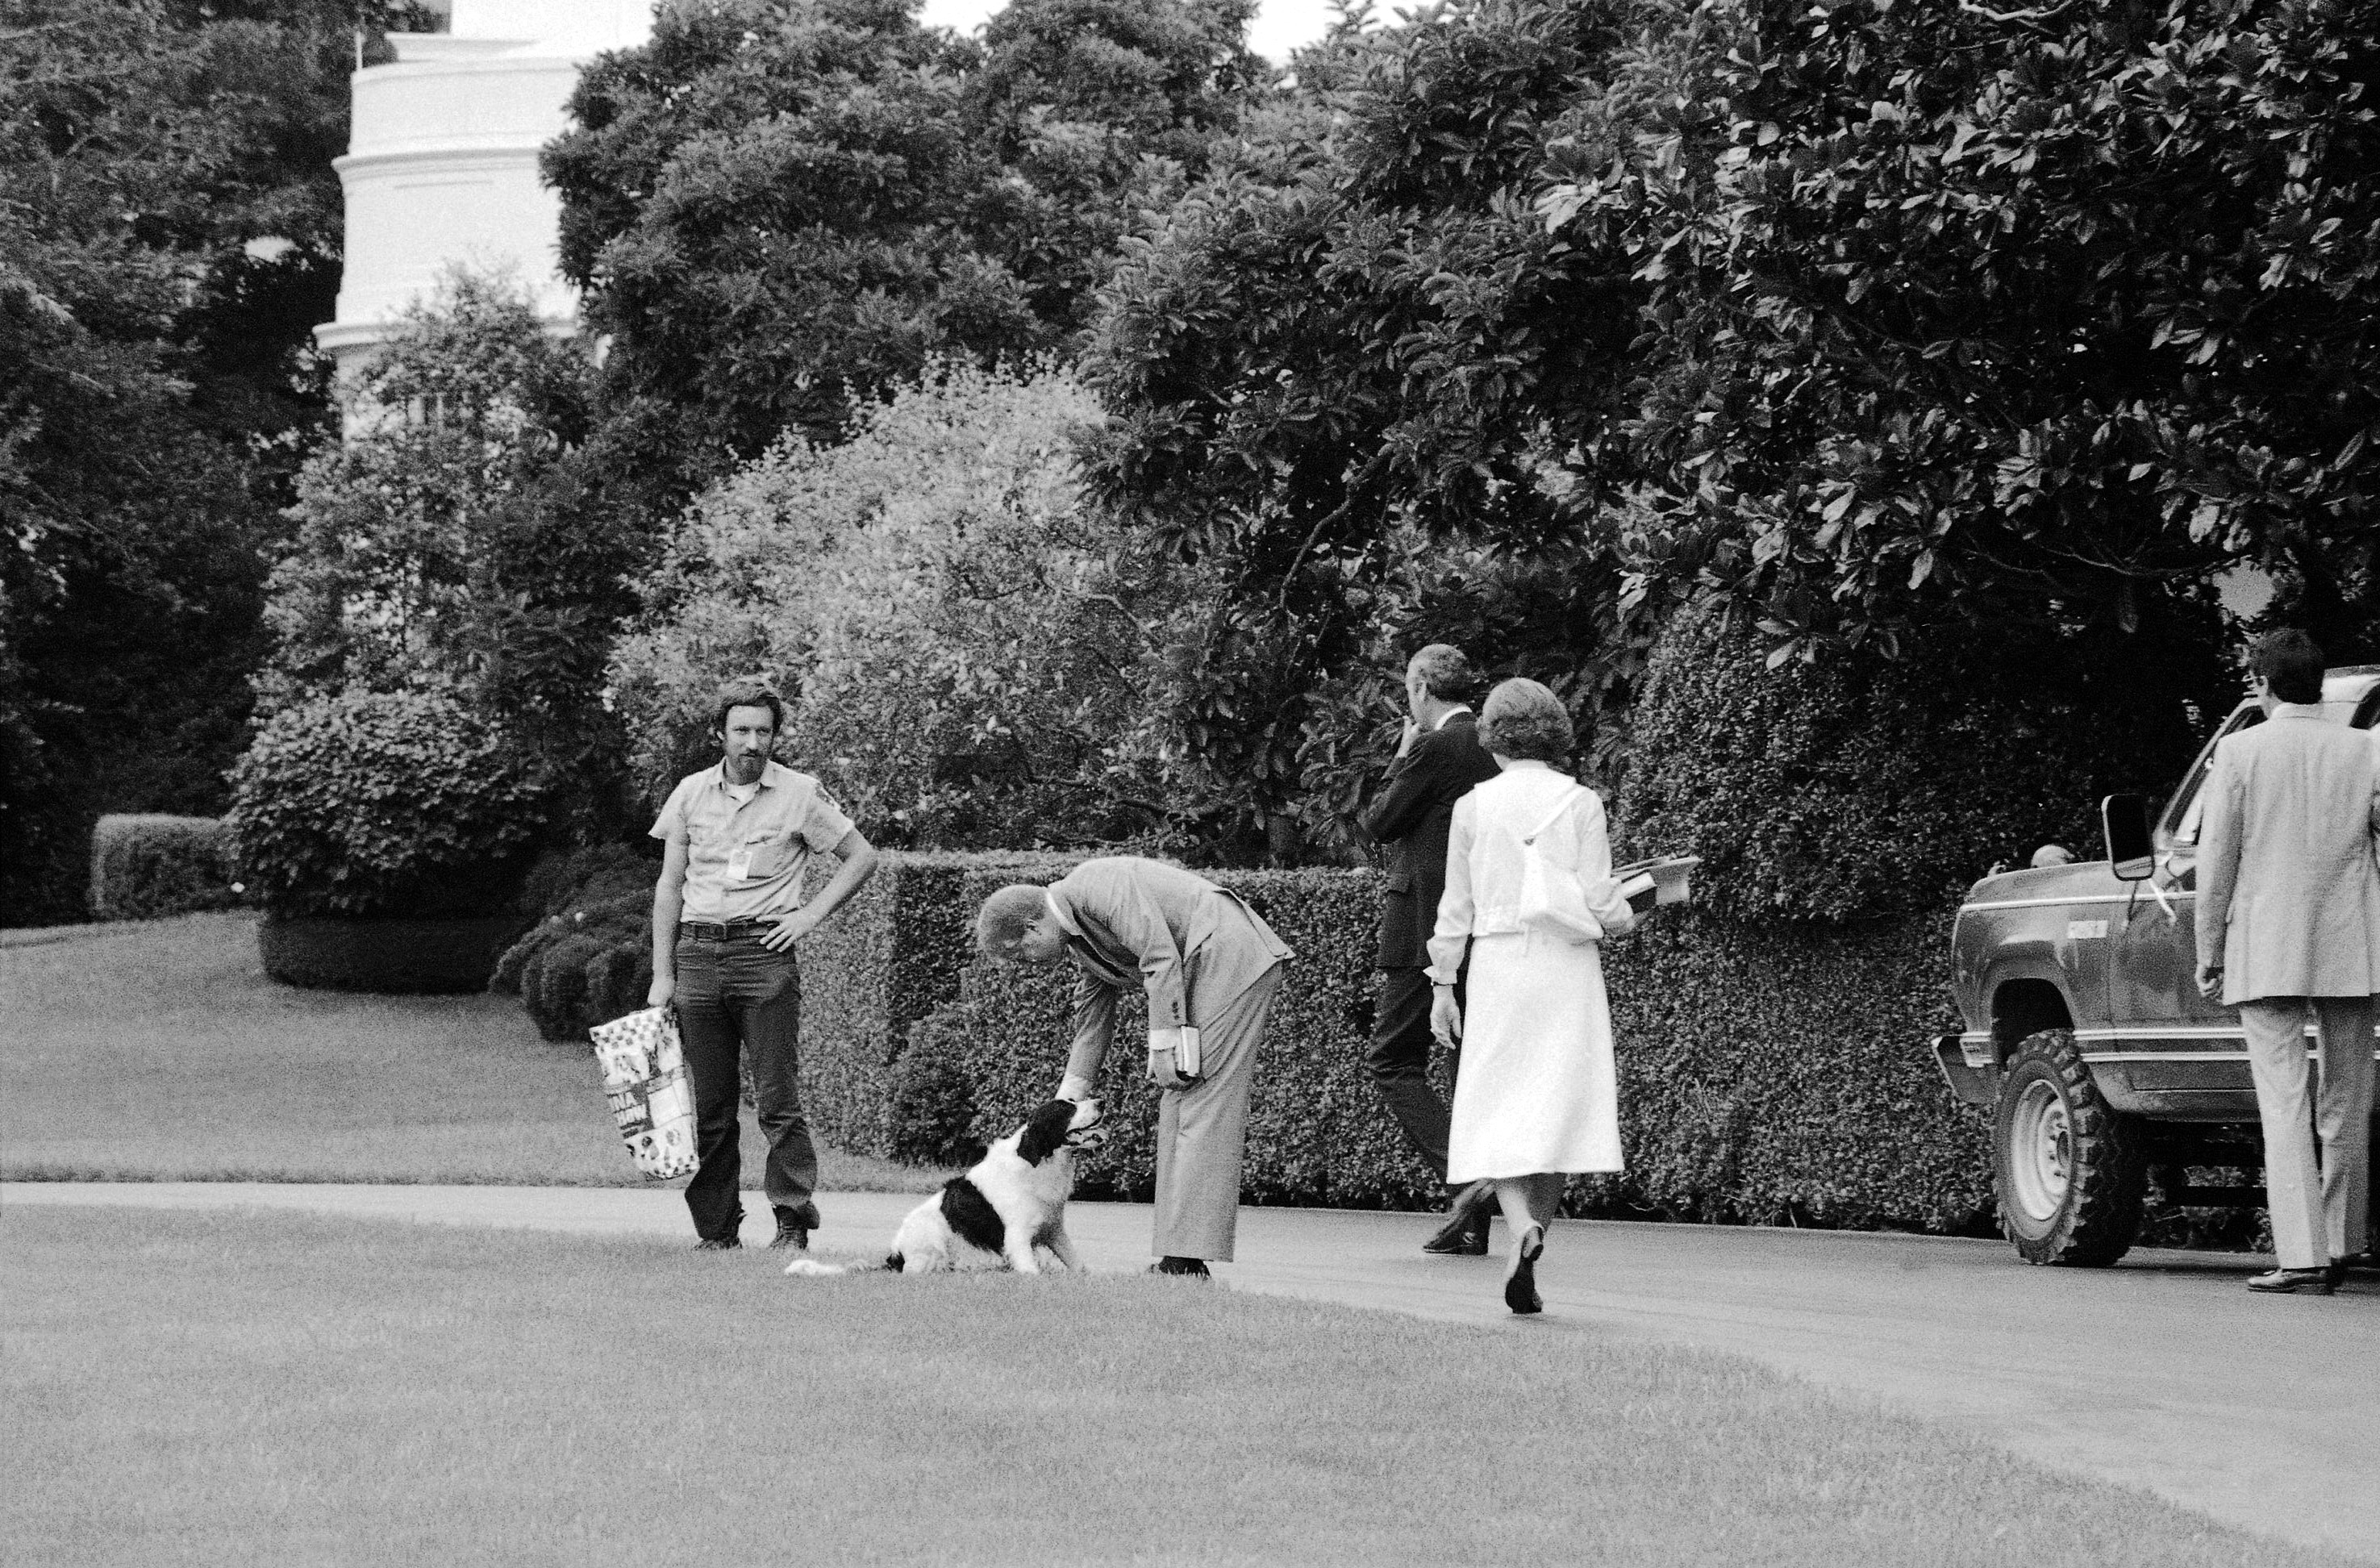 """President Jimmy Carter and Rosalynn Carter play with their dog """"Grits"""" on the south lawn of the White House in Washington D.C. after returning from church on Sunday, August 6,1978.  (AP Photo)"""